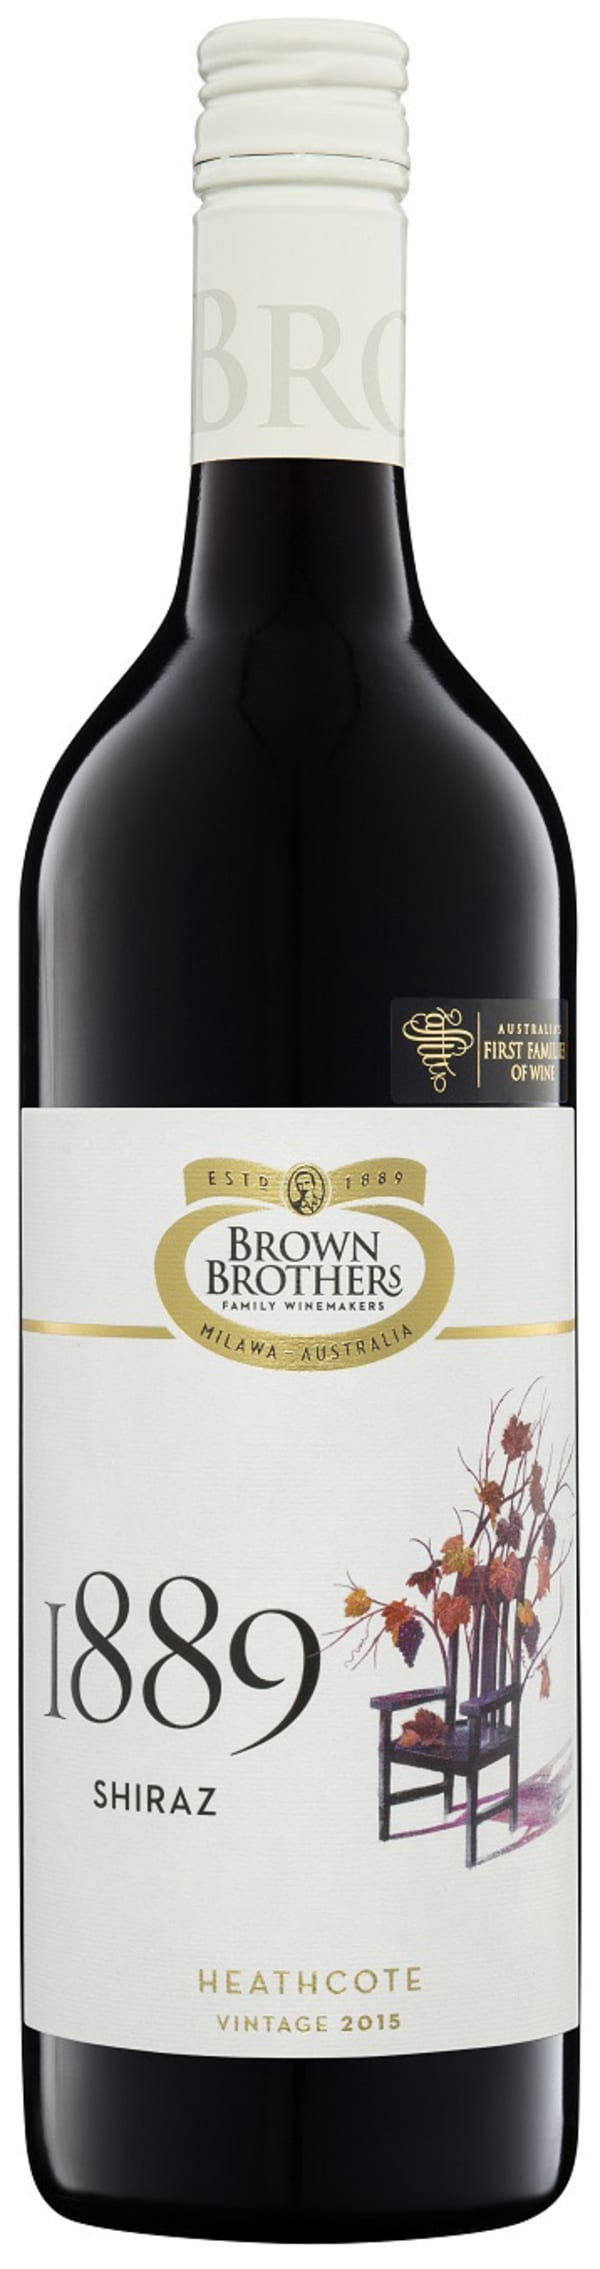 Brown Brothers Shiraz 2015